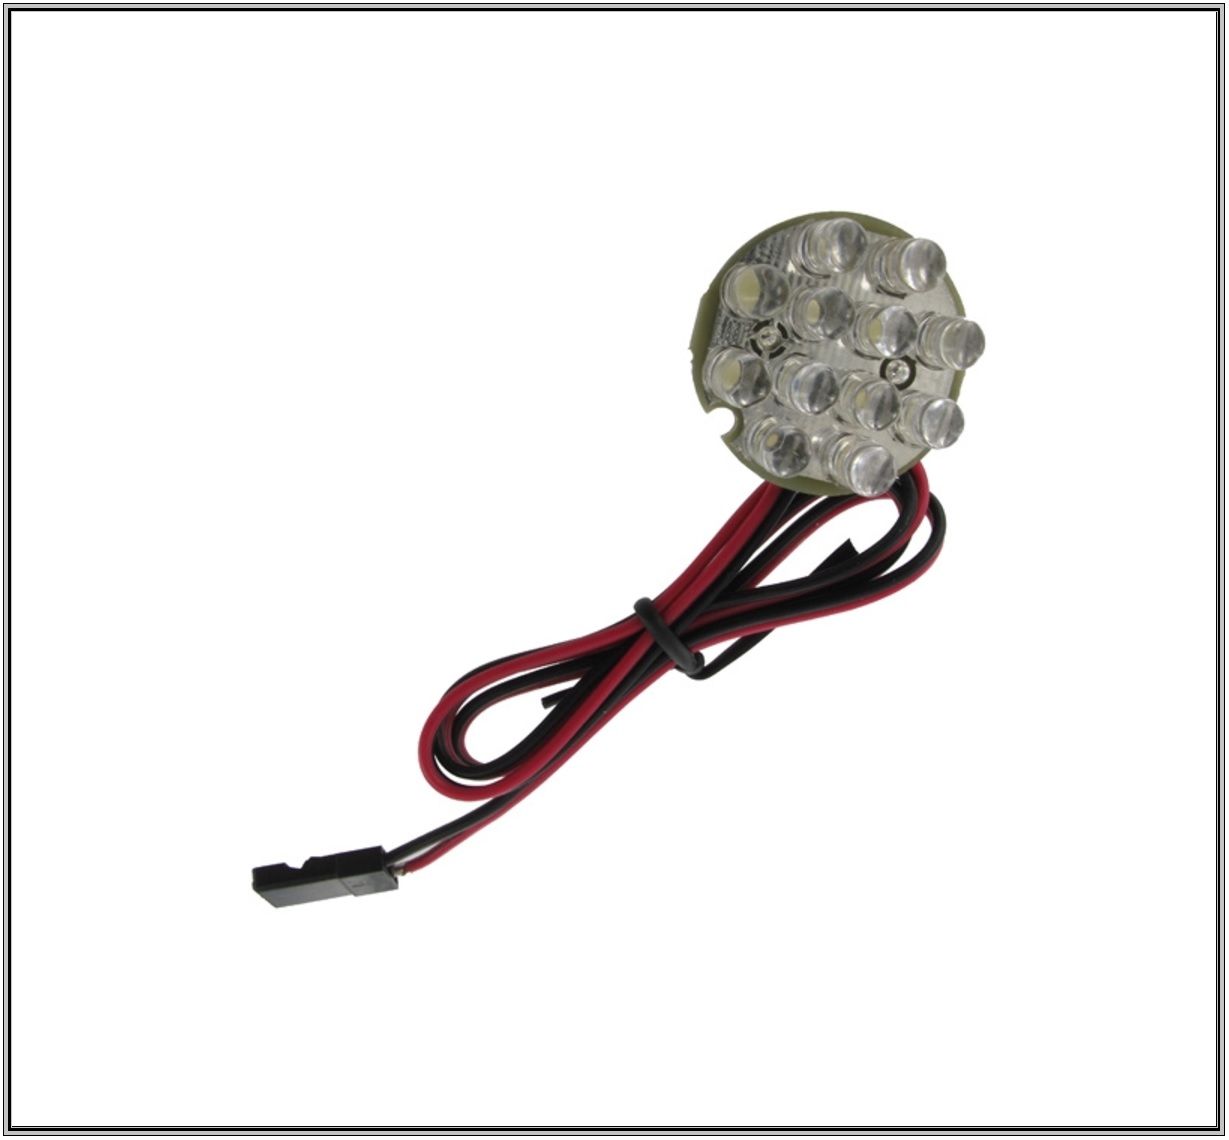 Many Helicopter Quadcopter Airplane Boat Car Controller 12 LED White Light Ultra-Bright... by